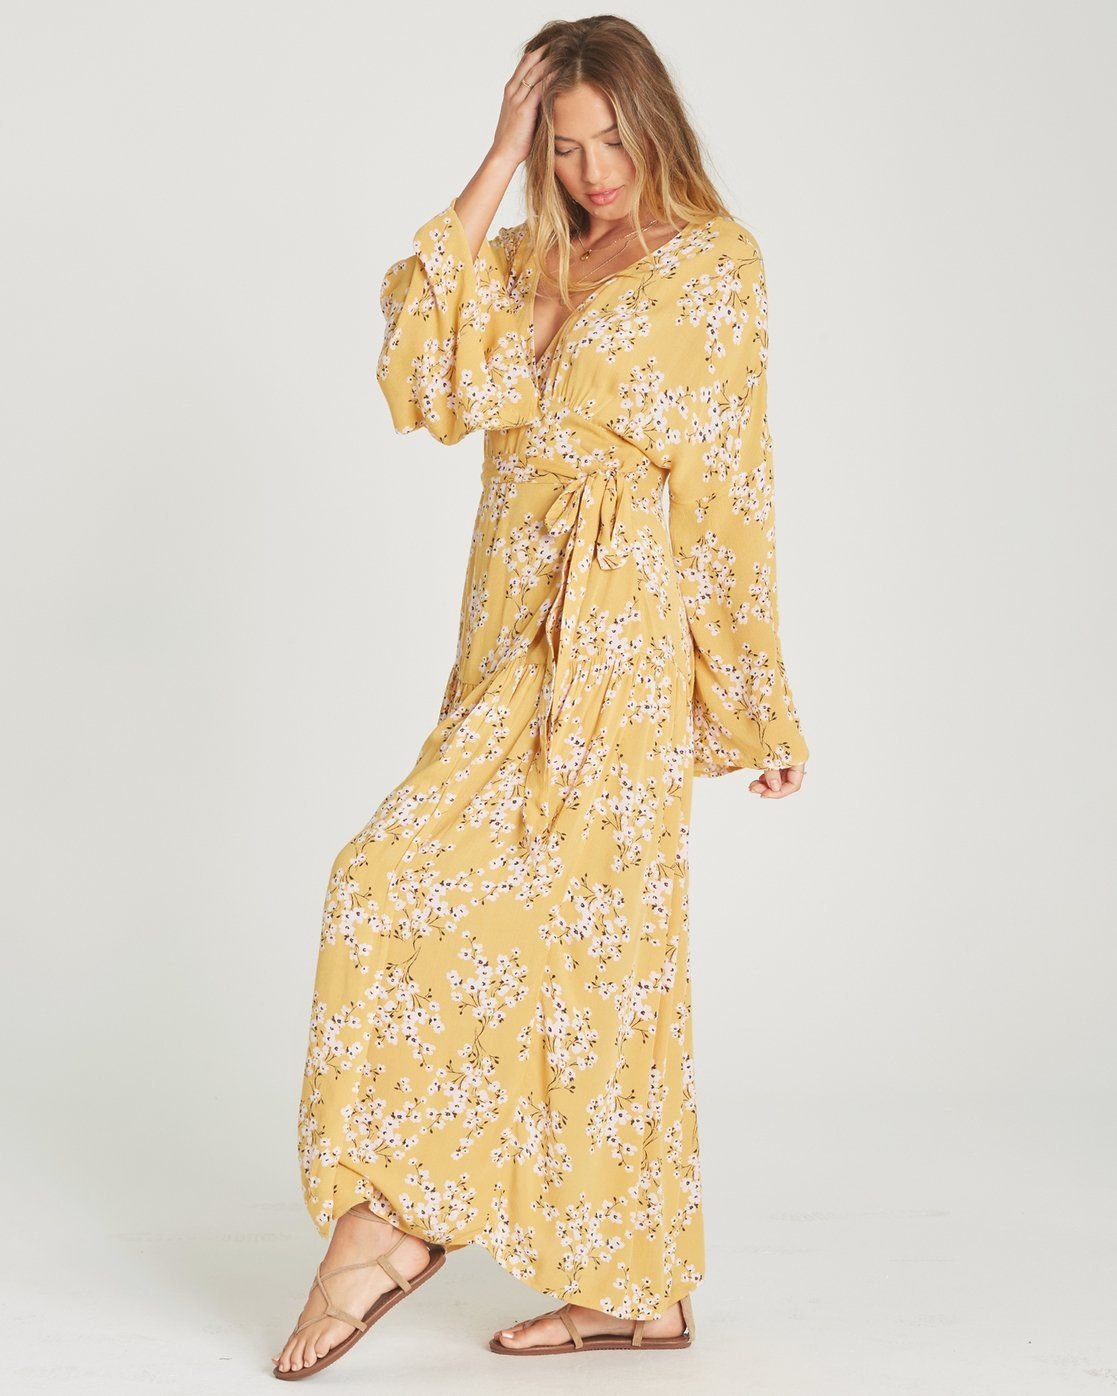 fbd7a08a83 My Favorite Maxi Dress in 2019 | ENDLESS SUMMER | Pinterest ...